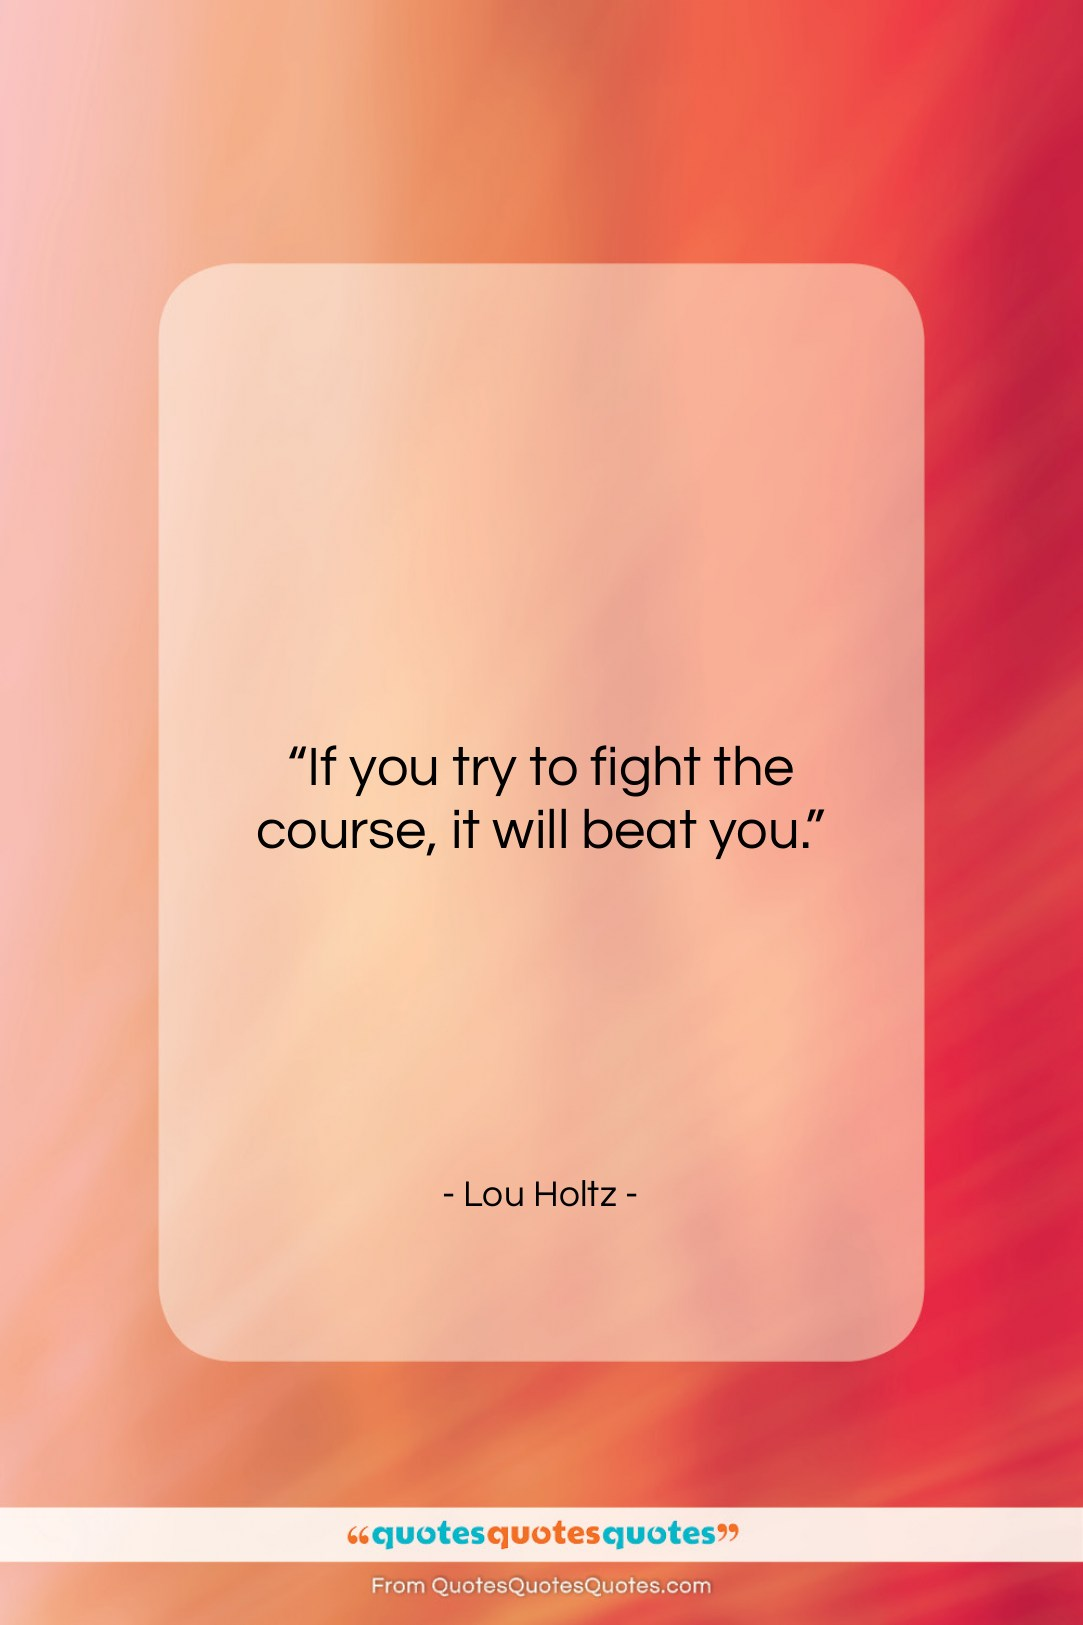 """Lou Holtz quote: """"If you try to fight the course,…""""- at QuotesQuotesQuotes.com"""